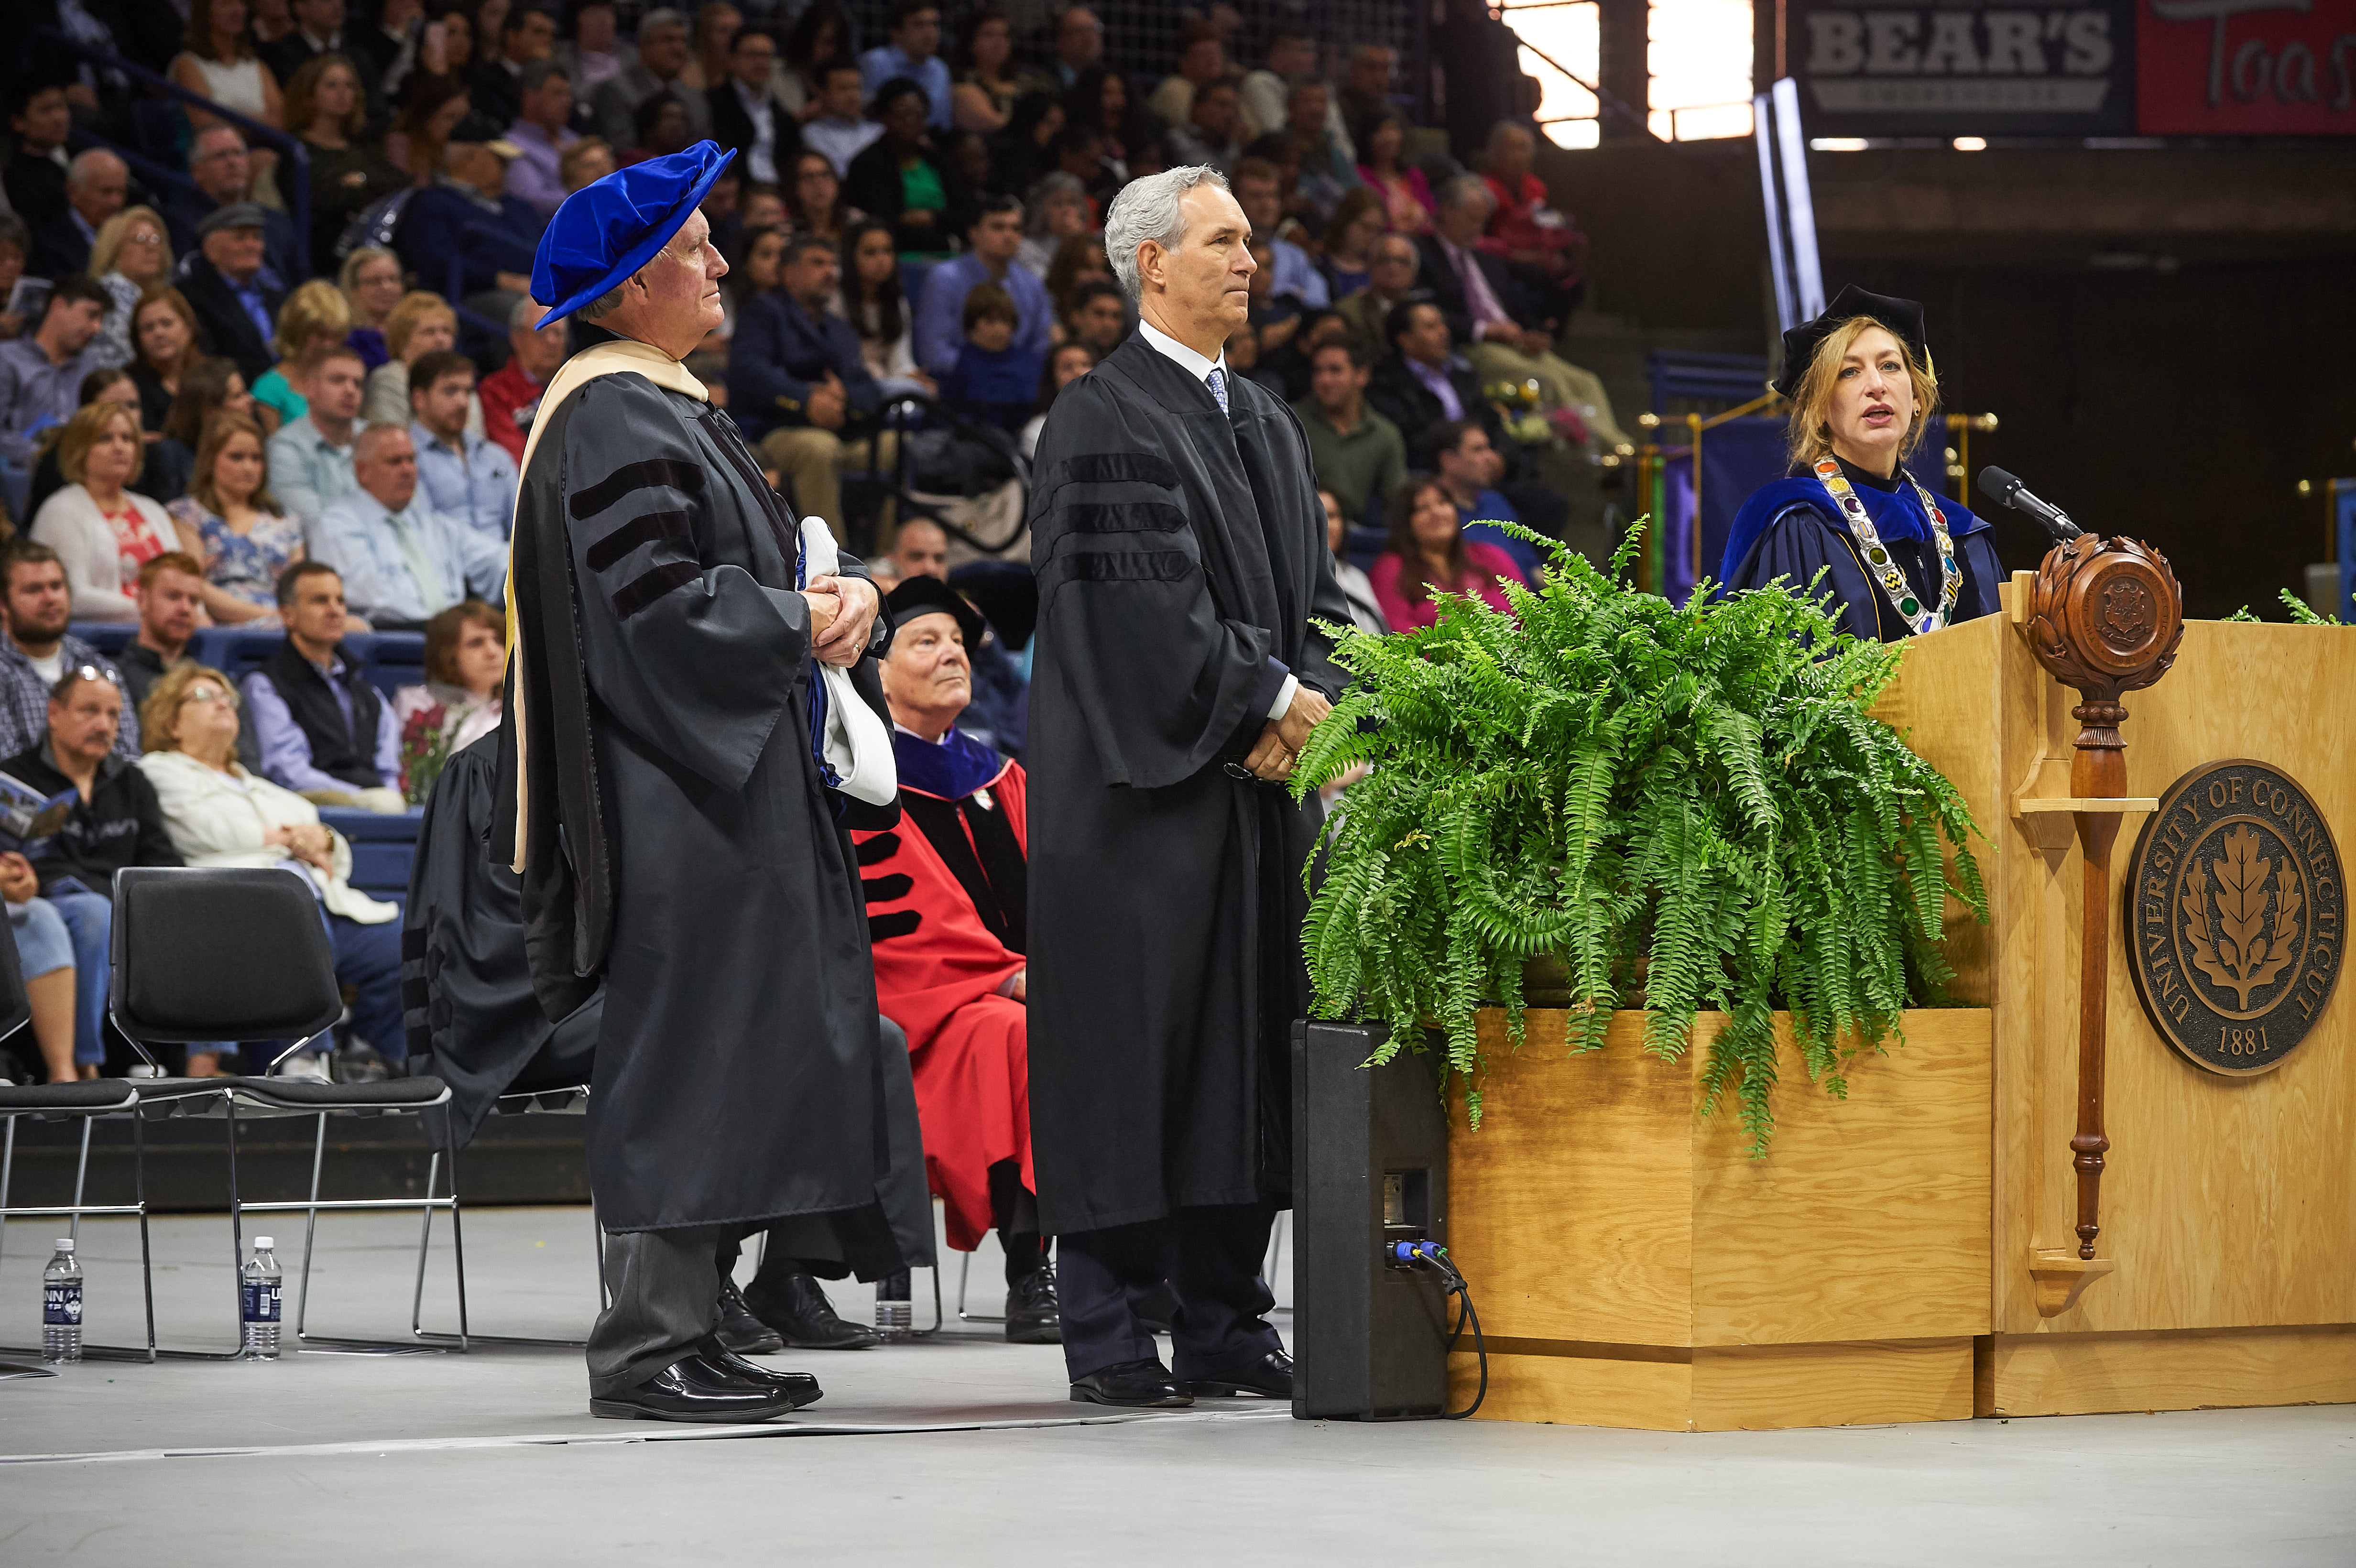 Douglas Elliot '82 (BUS), center, listens as President Susan Herbst, right, reads the citation and Lawrence Gramling, associate dean, holds a hood as Elliot receives an honorary degree during the School of Business Commencement ceremony at Gampel Pavilion on May 7, 2017. (Peter Morenus/UConn Photo)